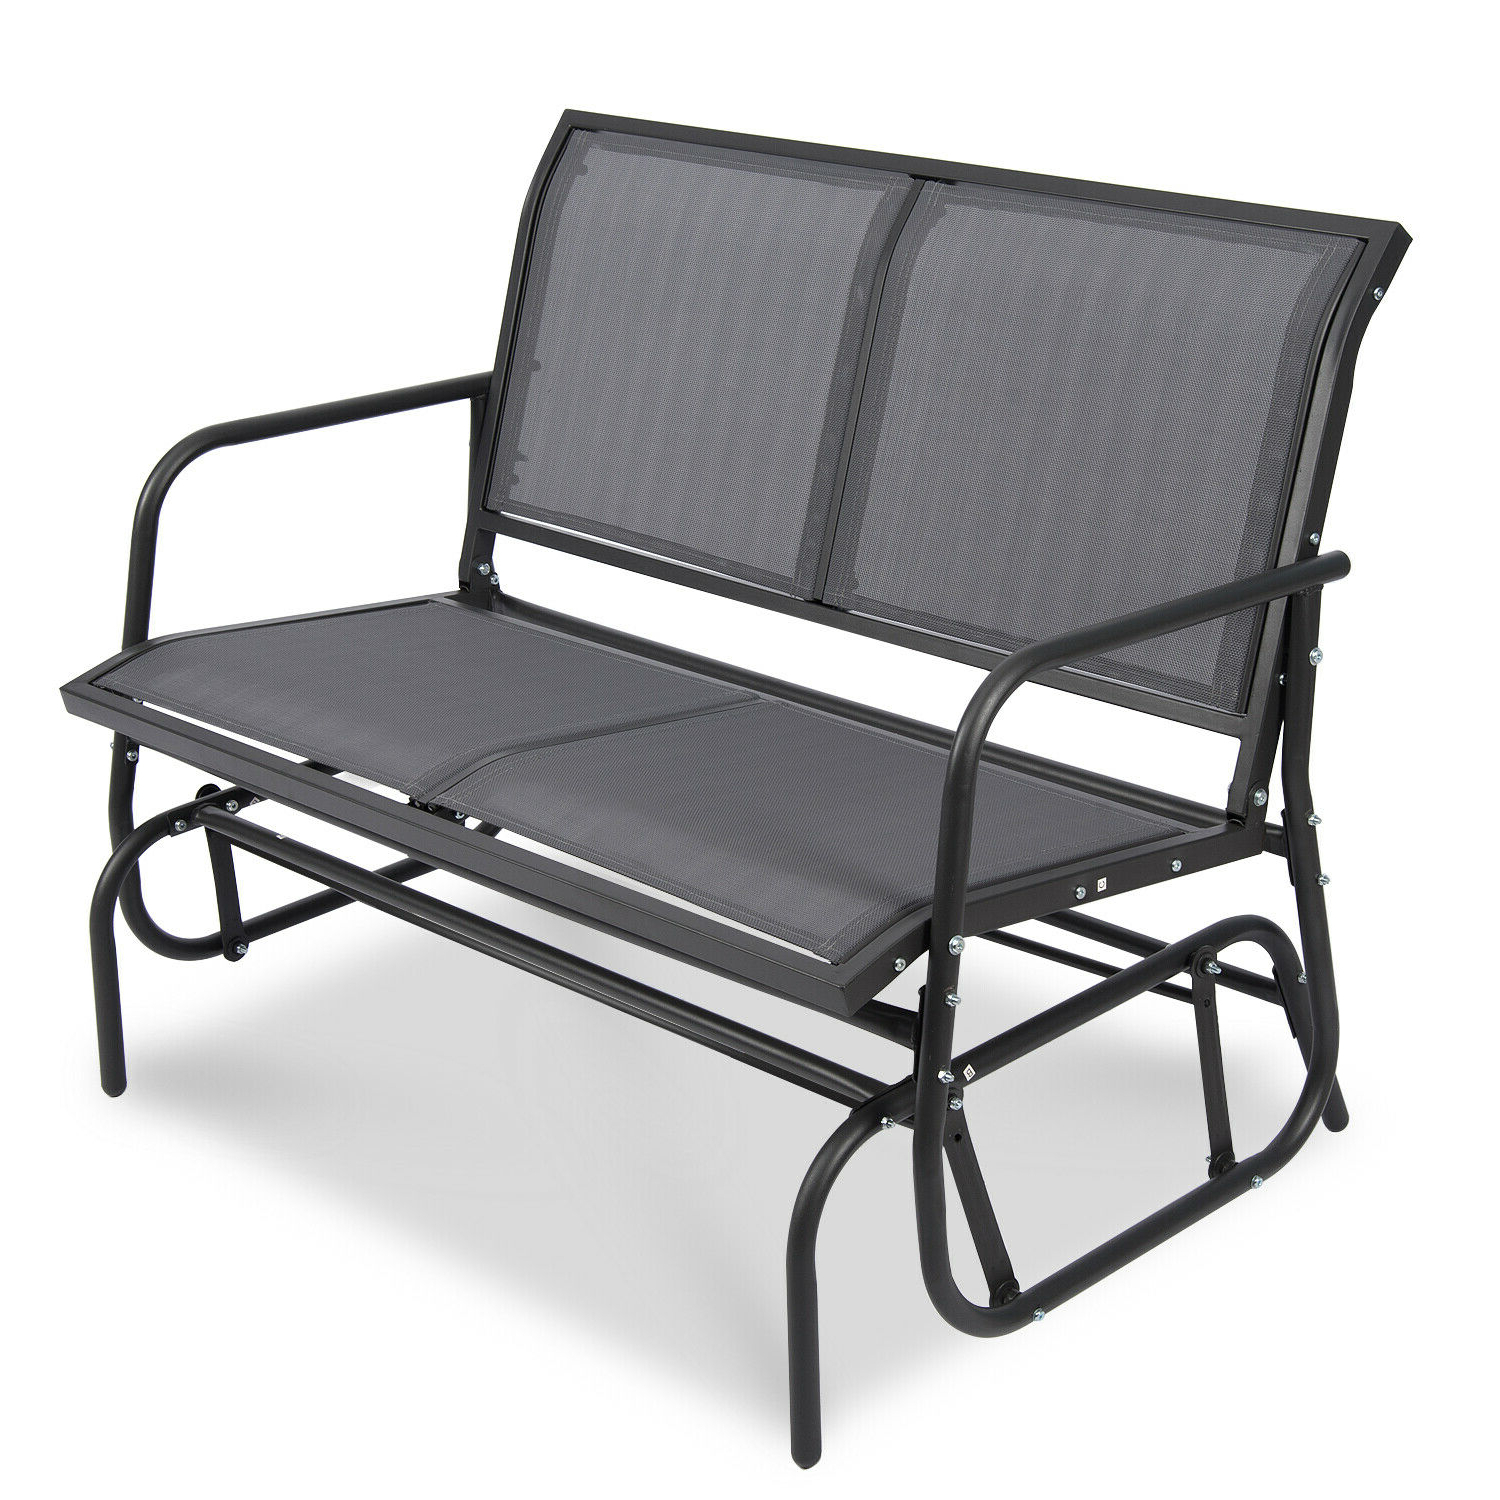 Latest 2 Person Loveseat Chair Patio Porch Swings With Rocker Within Patio Garden Glider 2 Person Swing Bench Rocking Chair Porch Outdoor Furniture (View 5 of 25)